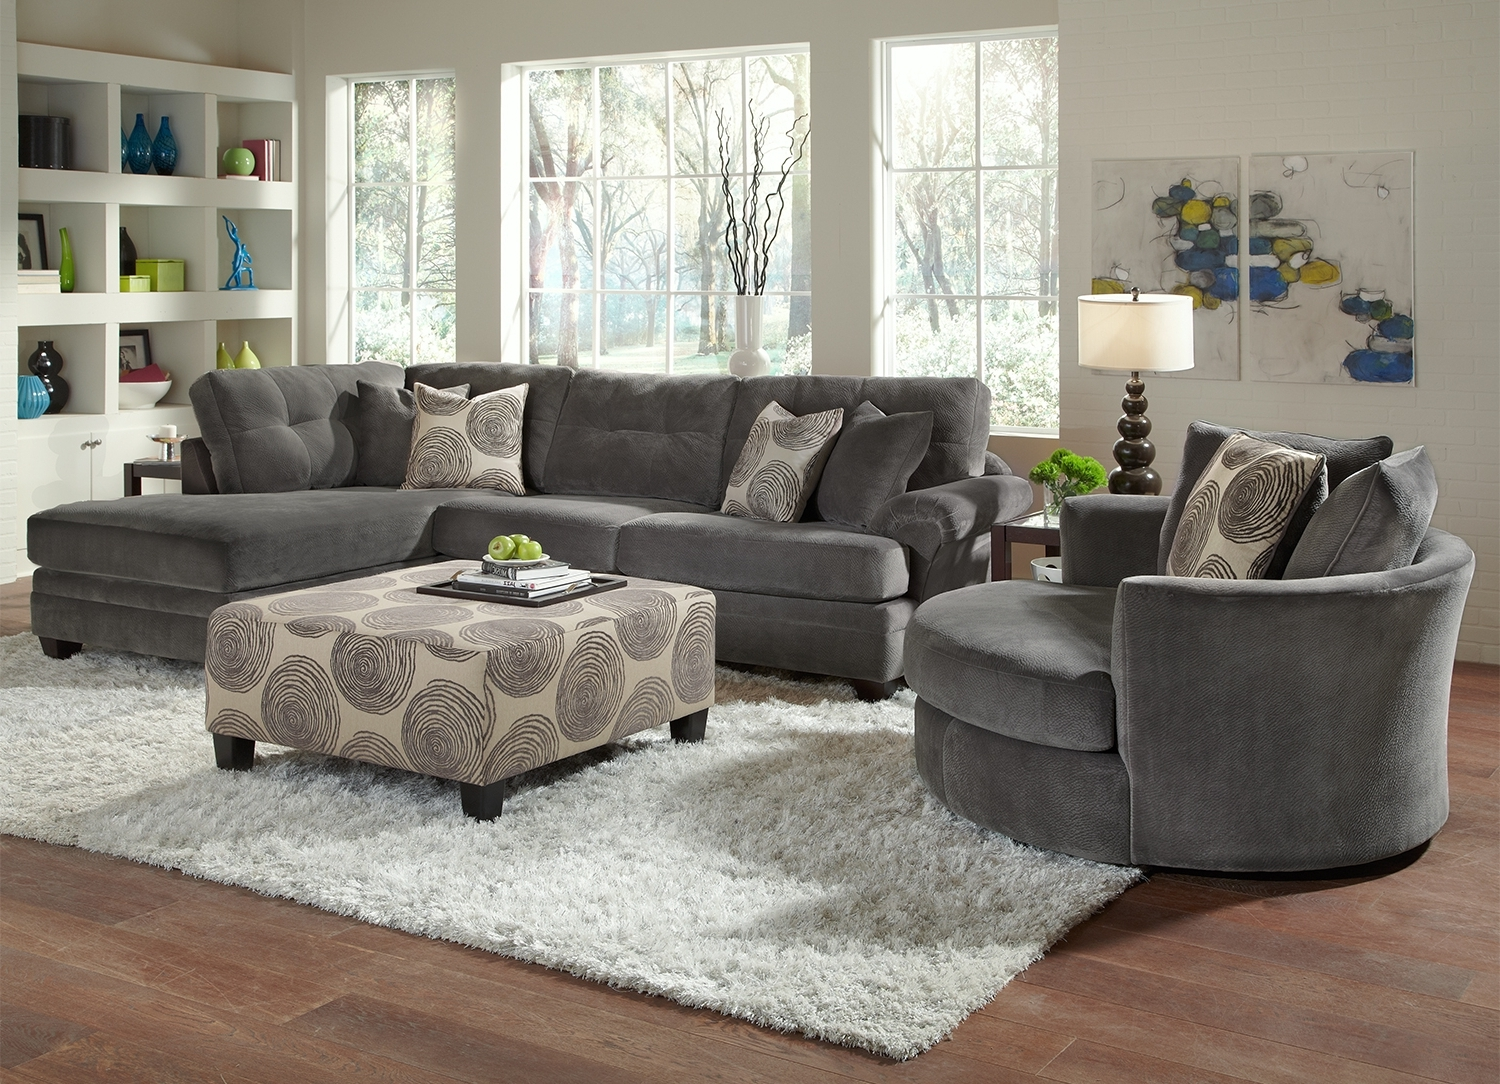 tips to buy swivel chairs for living room